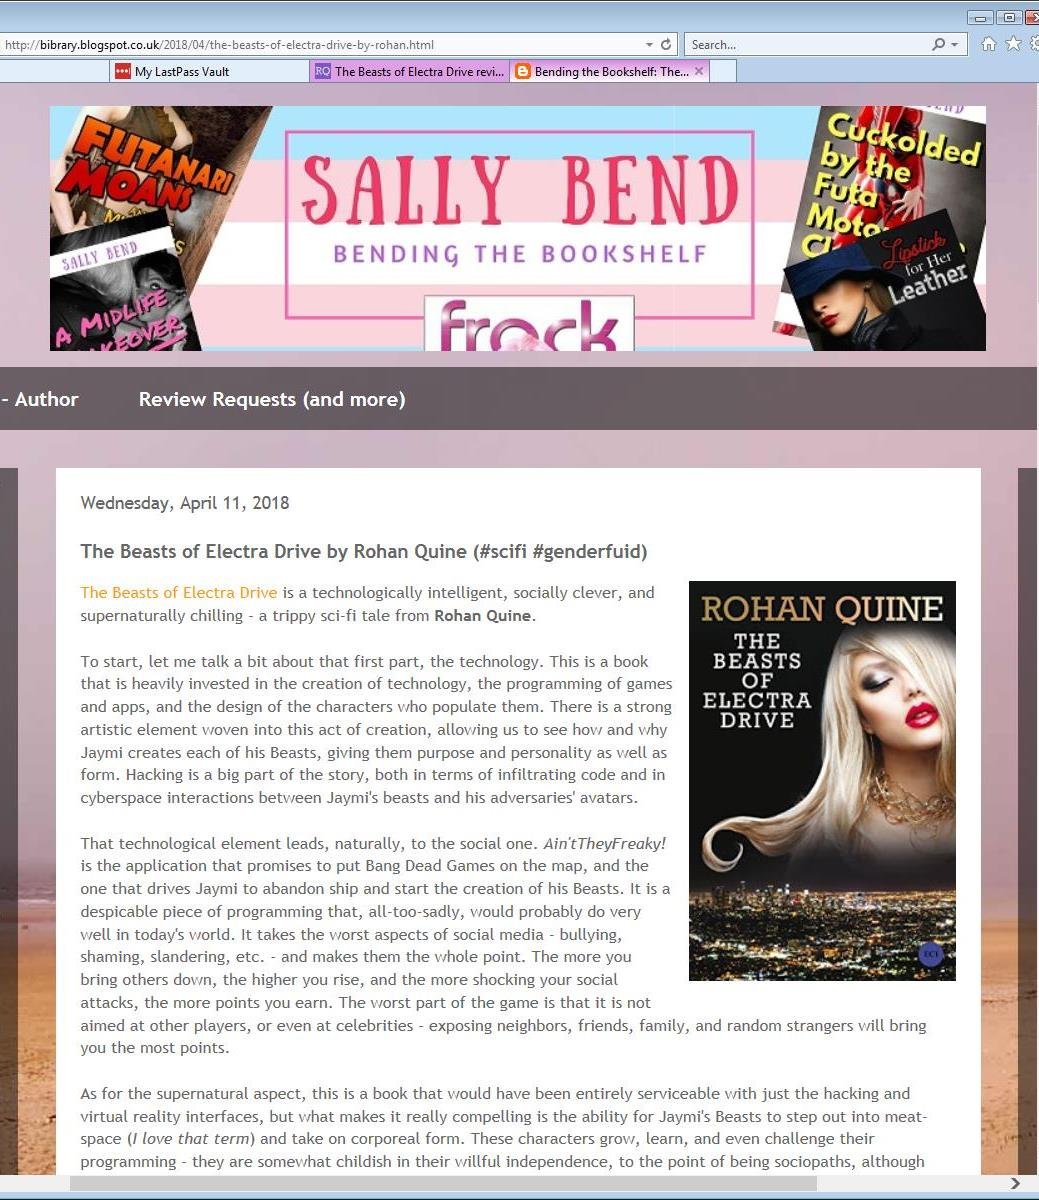 Review of Rohan Quine's 'The Beasts of Electra Drive', by Sally Bend at 'Bending the Bookshelf' - 1